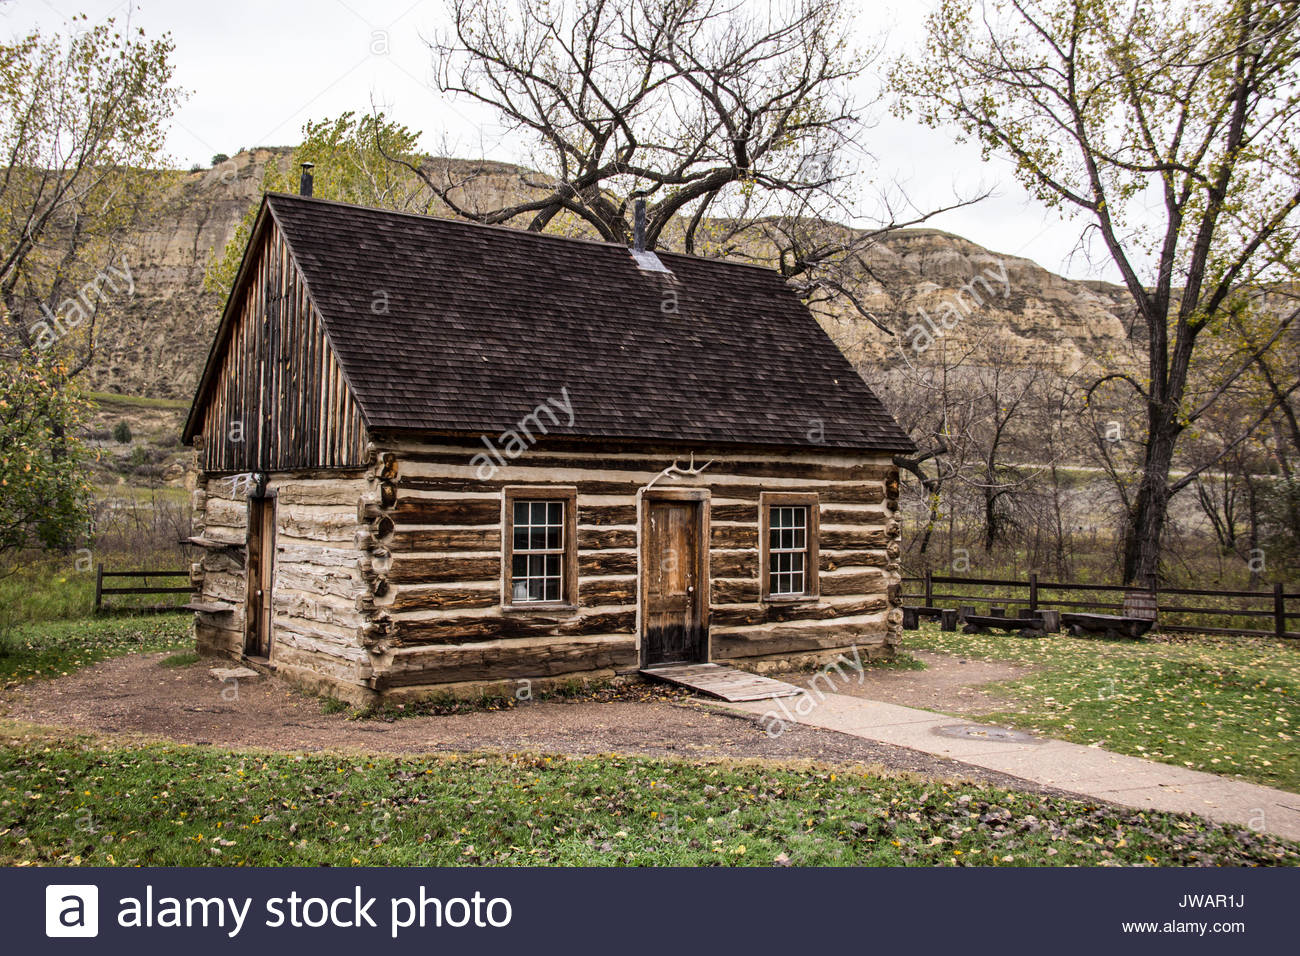 The original log hunting cabin beloved by Theodore Roosevelt. - Stock Image